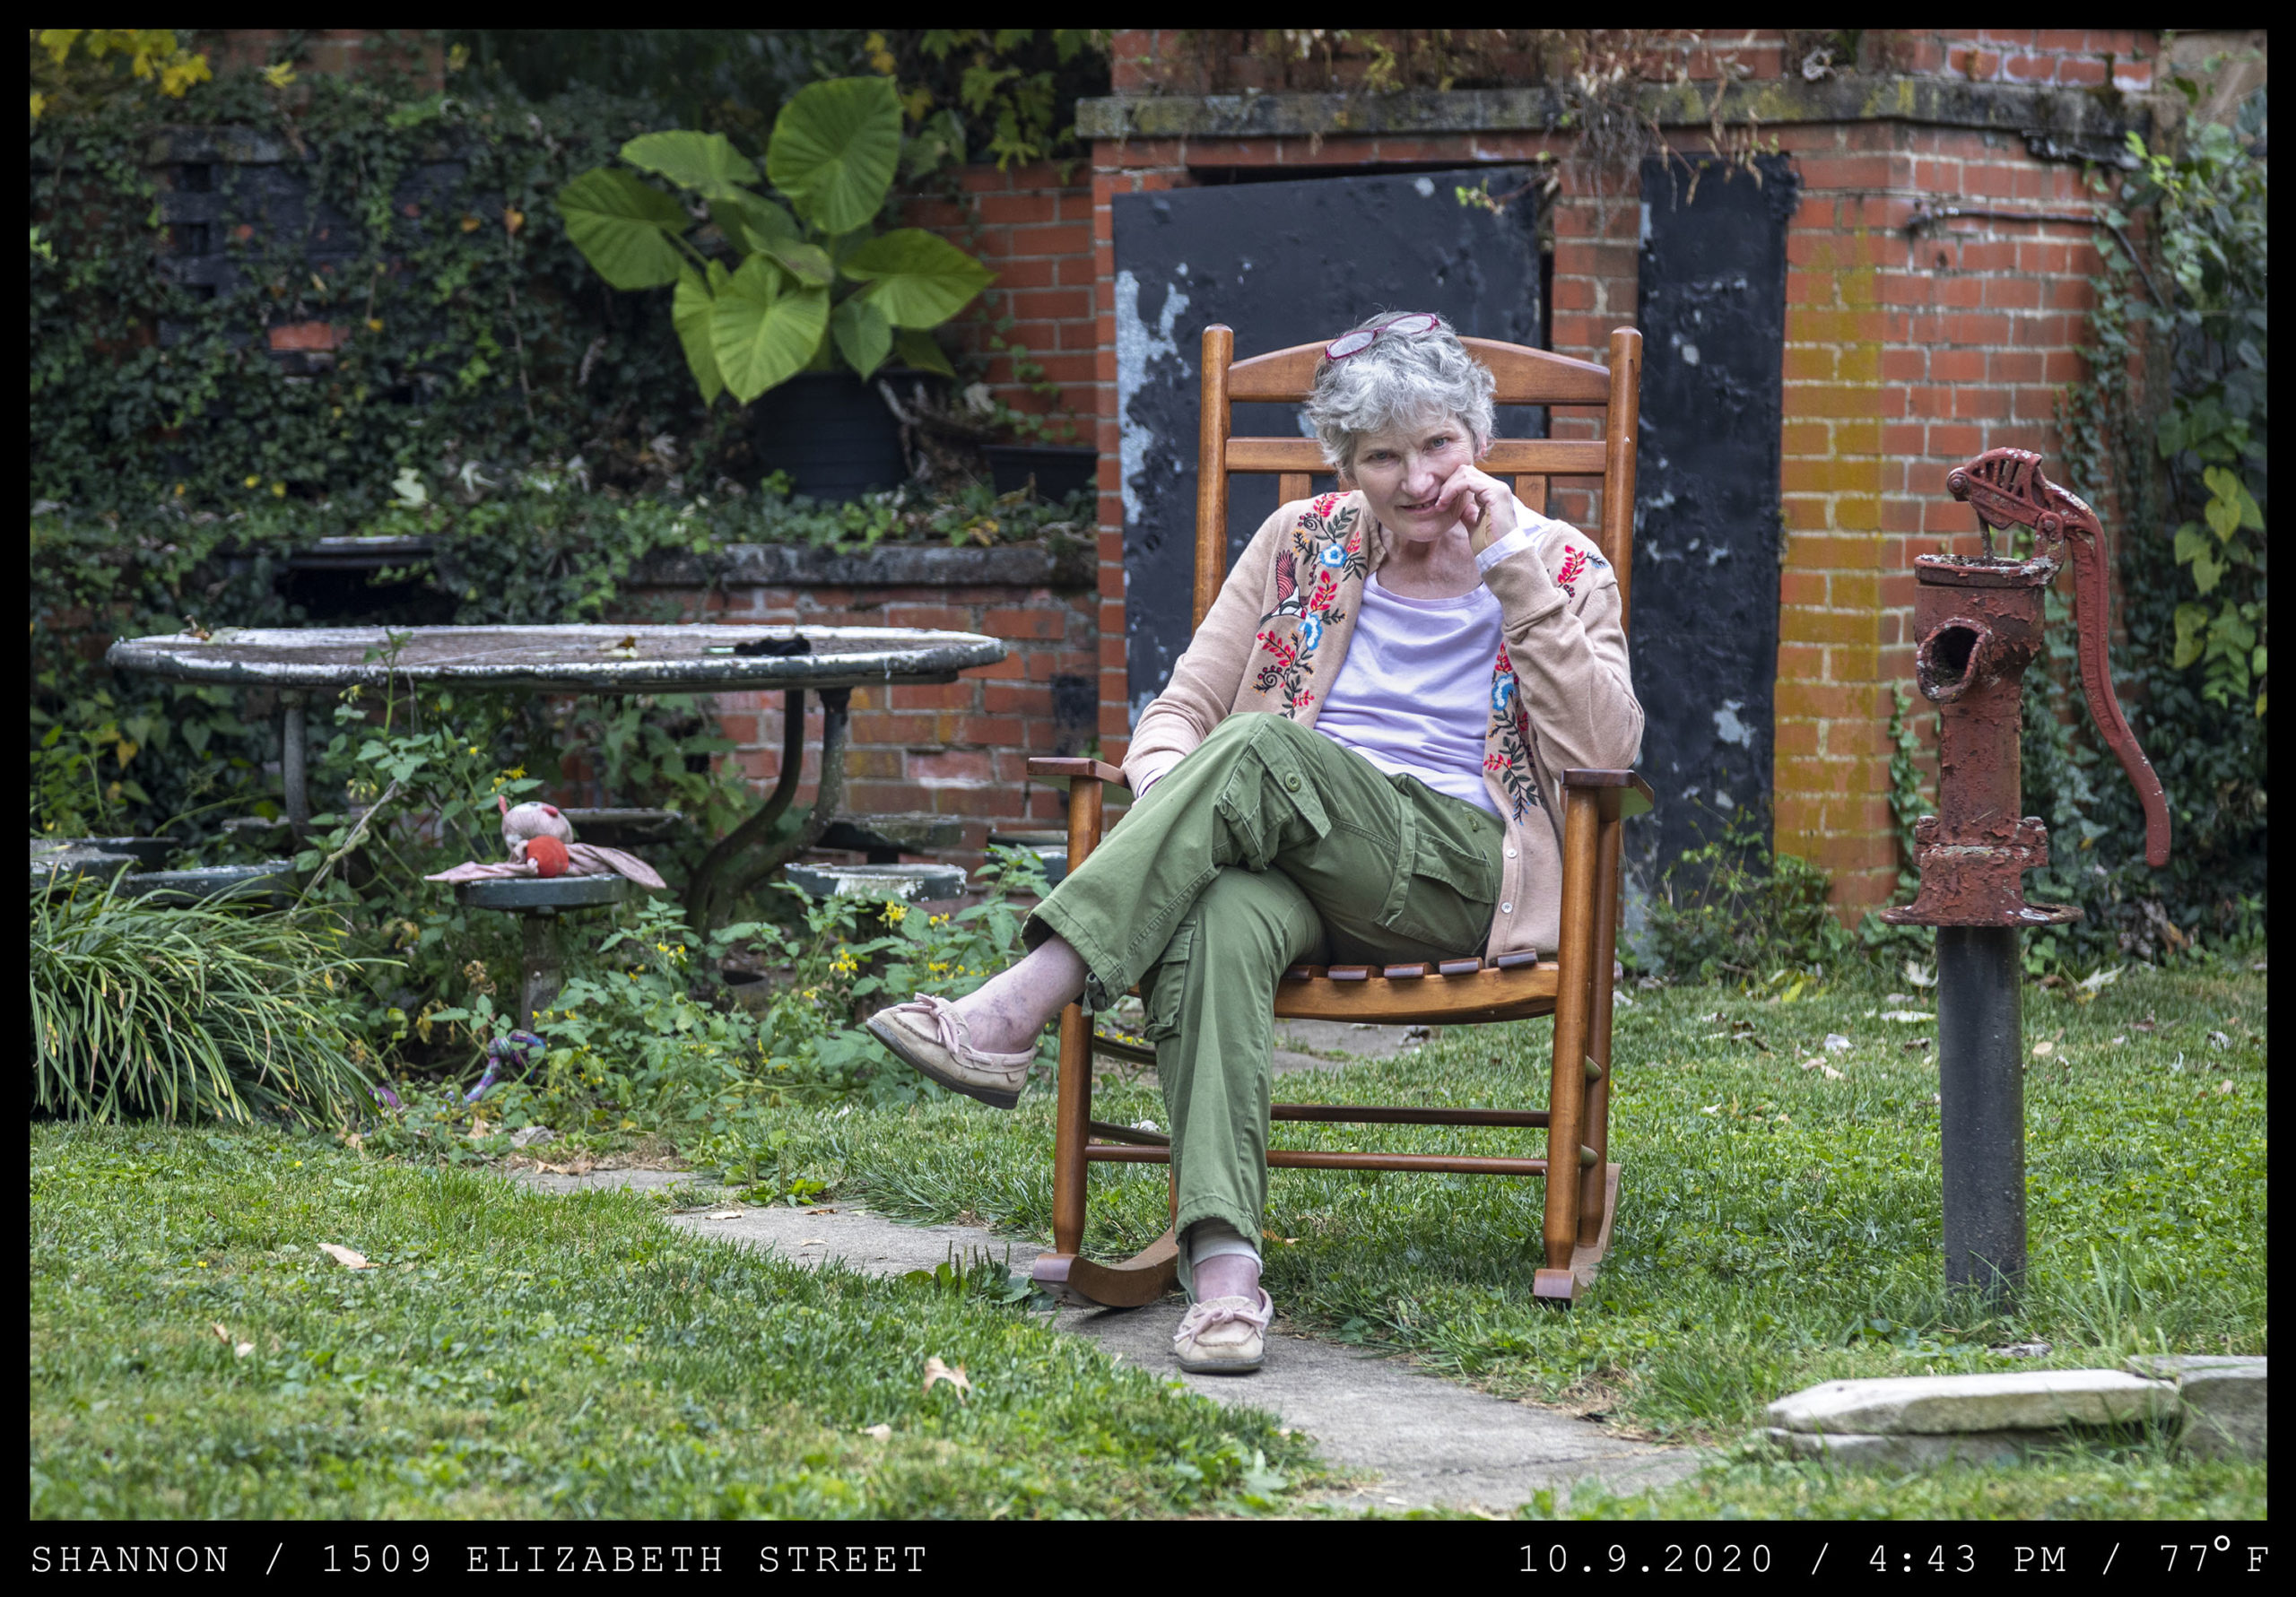 An older woman sits in a garden in a wooden rocking chair next to an antique water pump.